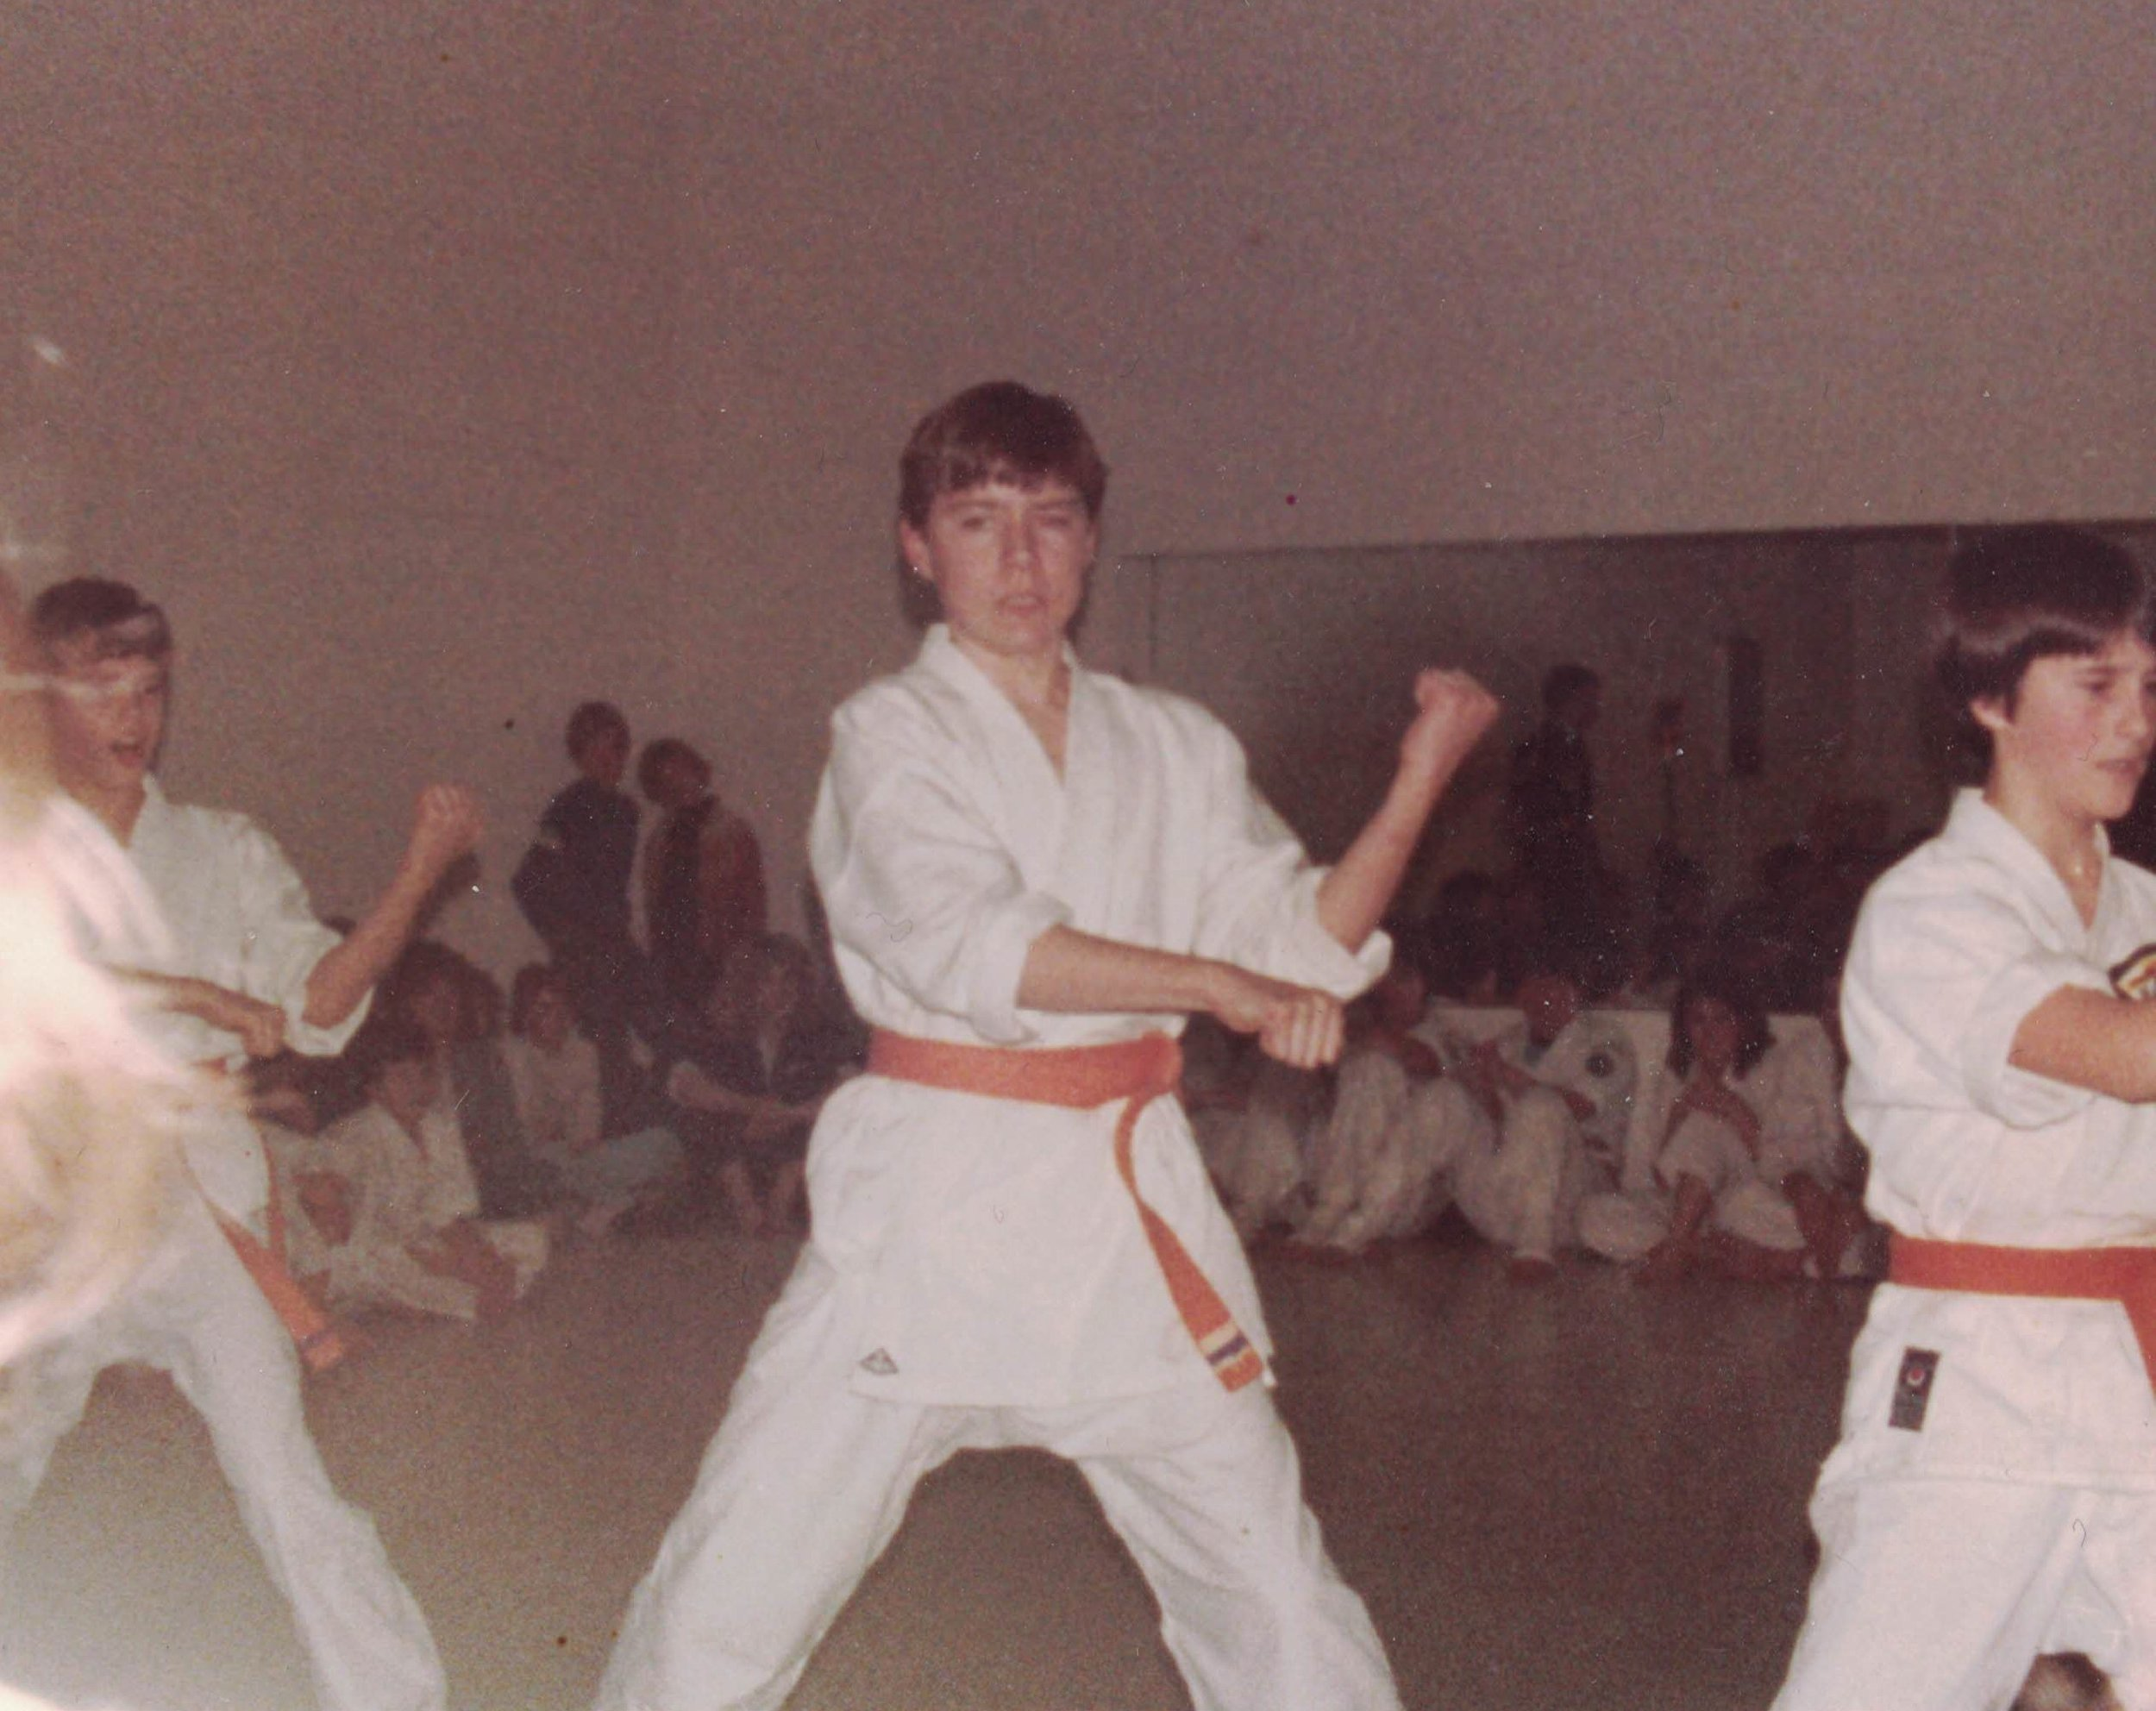 Colin - Orange Belt02022019.jpg